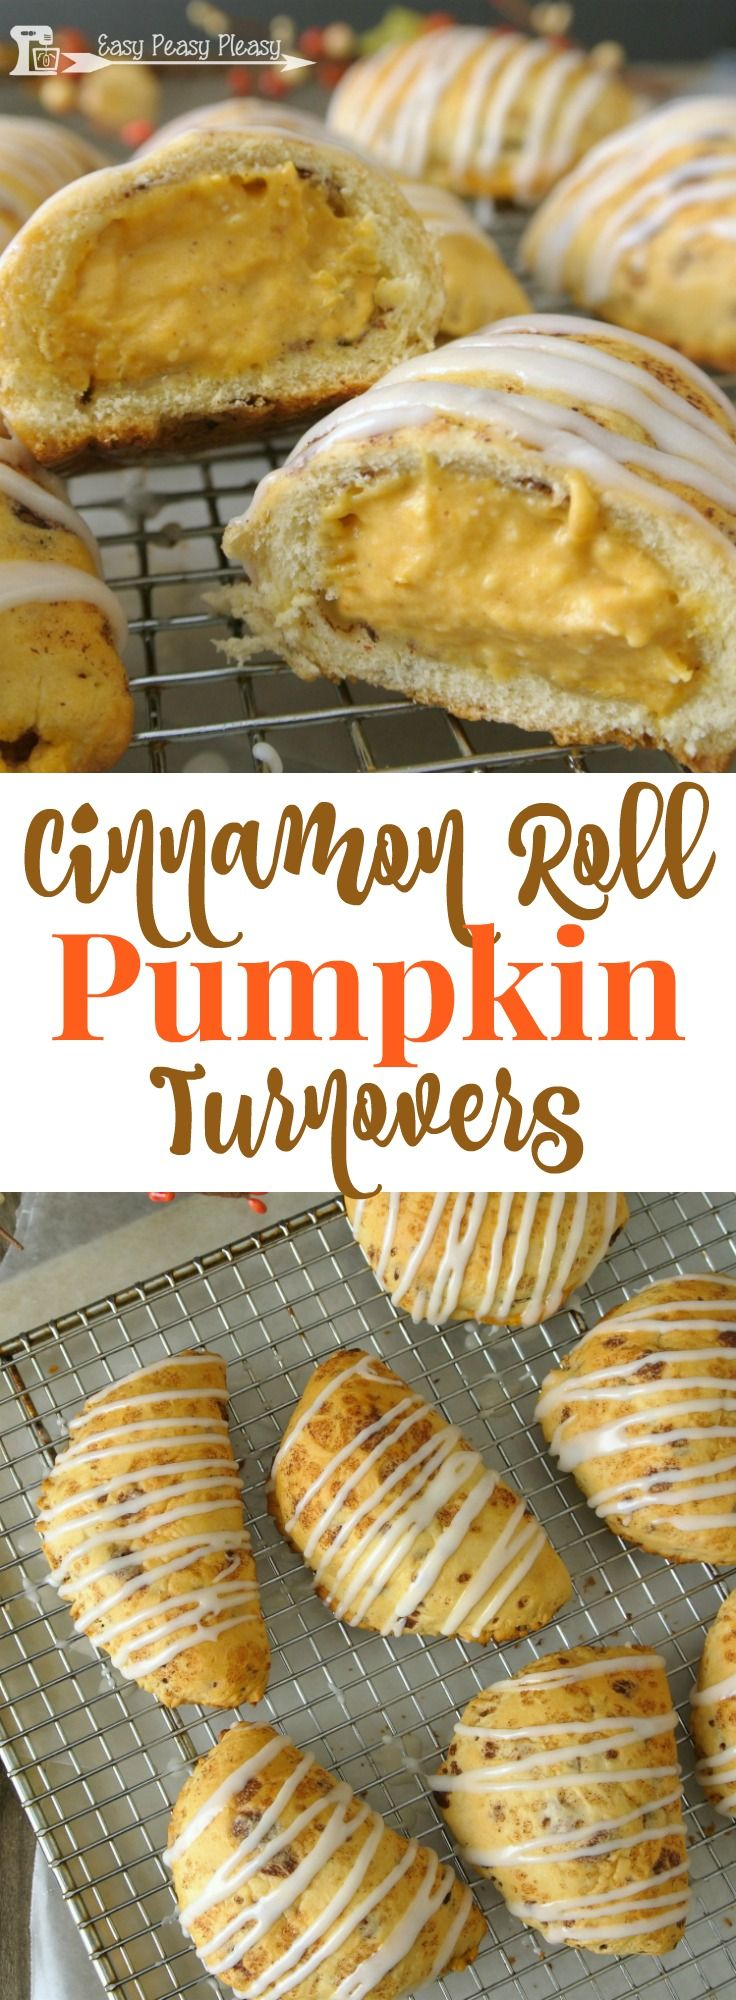 Easy 5 Ingredient Cinnamon Roll Pumpkin Turnovers are delicious with the help of canned cinnamon rolls.